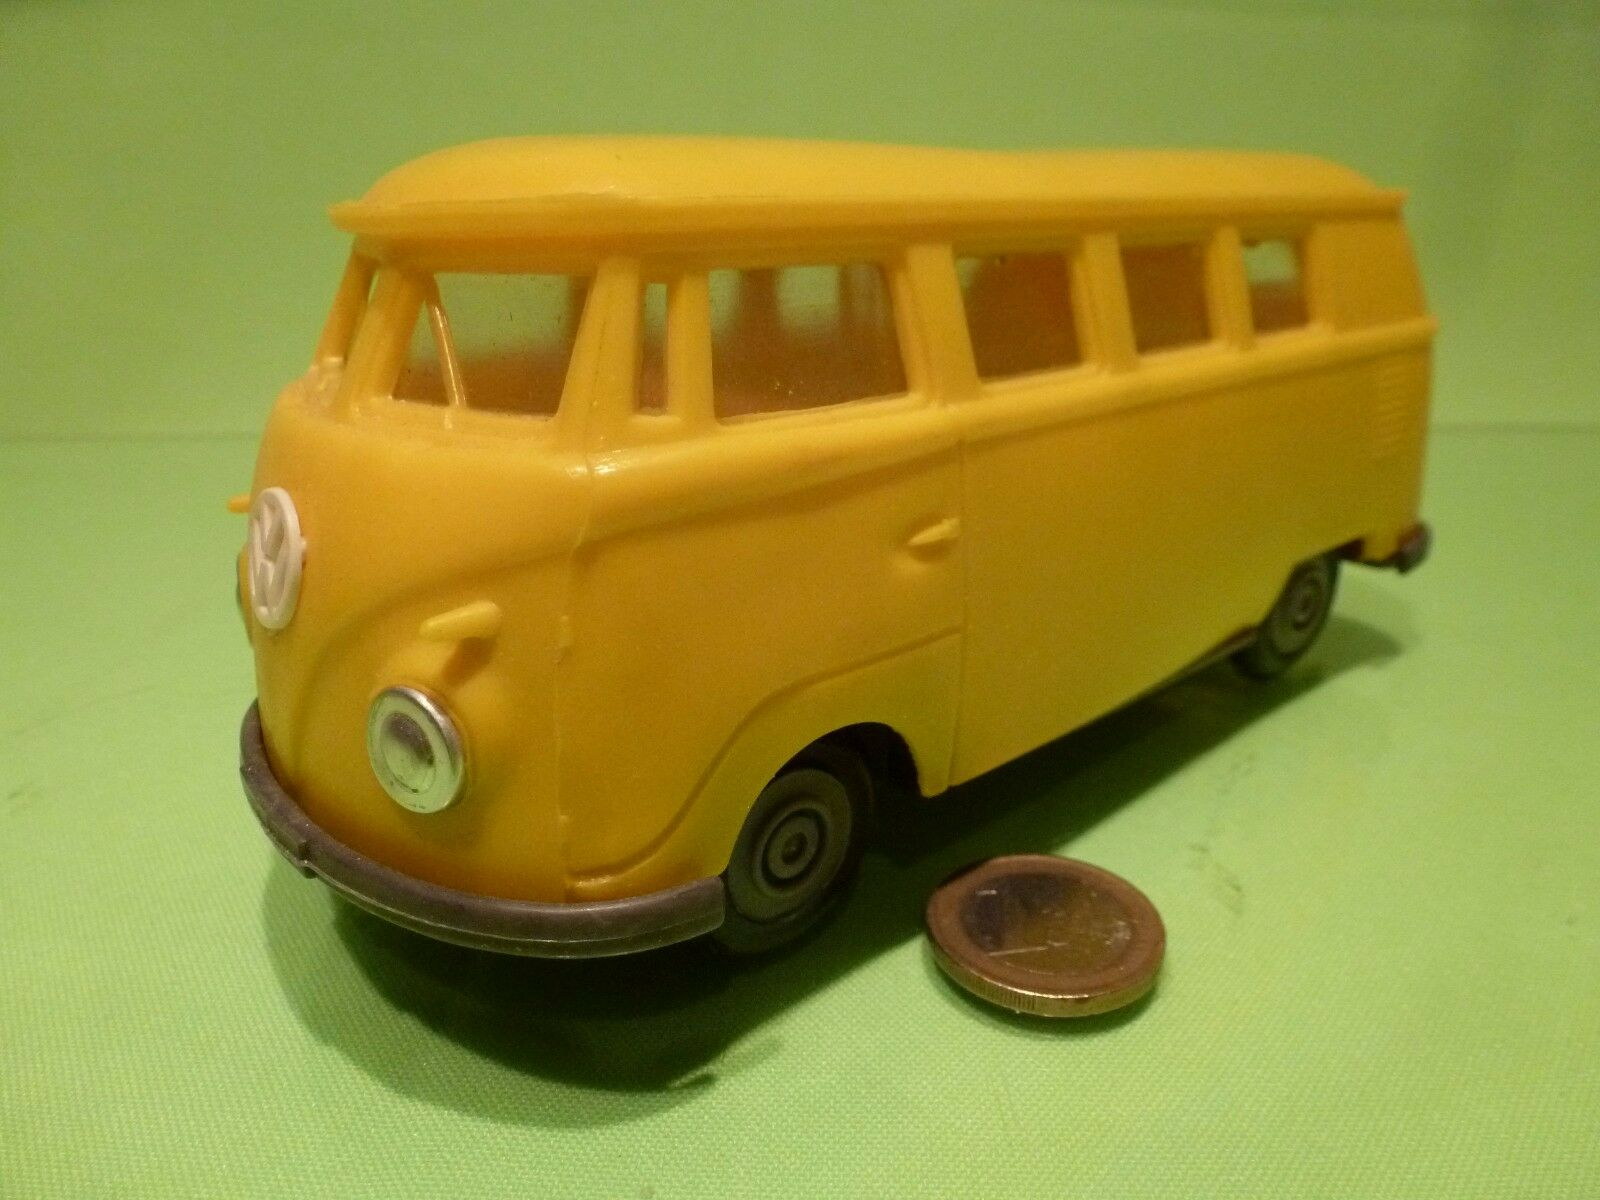 PLASTIC OLD VINTAGE VW VOLKSWAGEN T1 - Gelb L17.0cm - GOOD - FRICTION